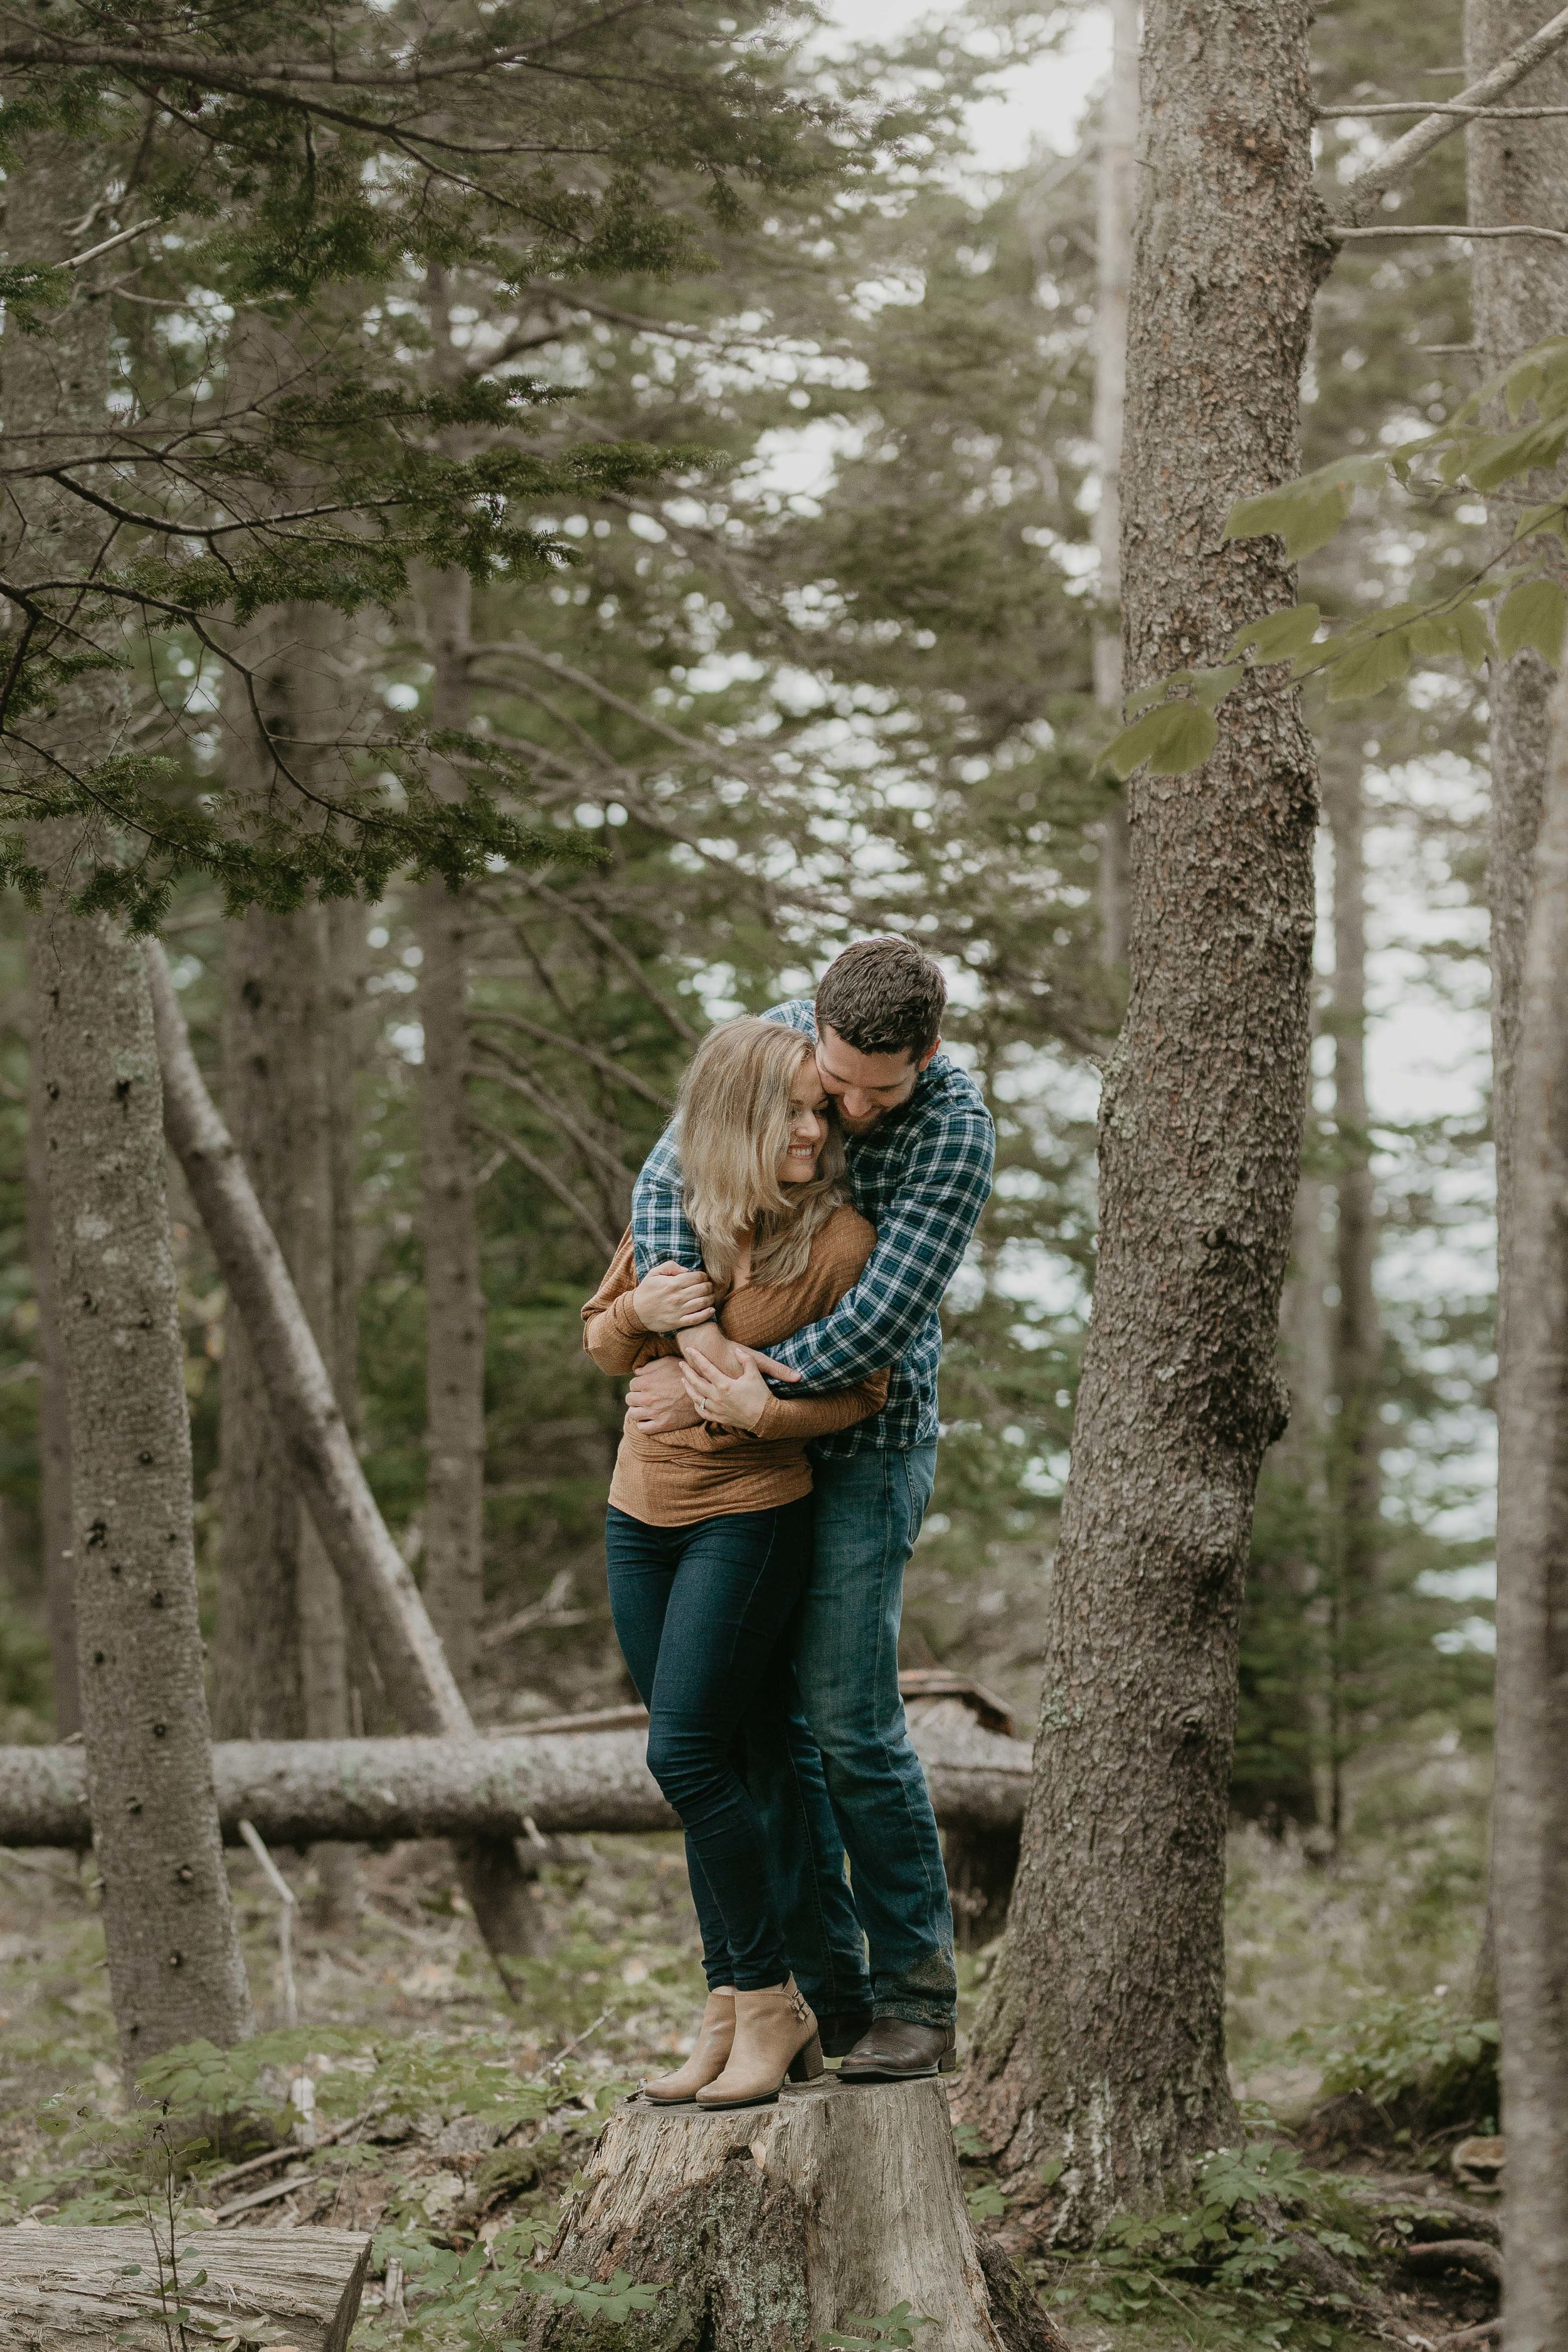 nicole-daacke-photography-acadia-national-park-adventurous-engagement-session-photos-otter-cliffs-forests-coastline-sand-beach-adventure-session-bar-harbor-mt-desert-island-elopement-fall-bass-harbor-lighthouse-wedding-maine-landscape-photographer-38.jpg